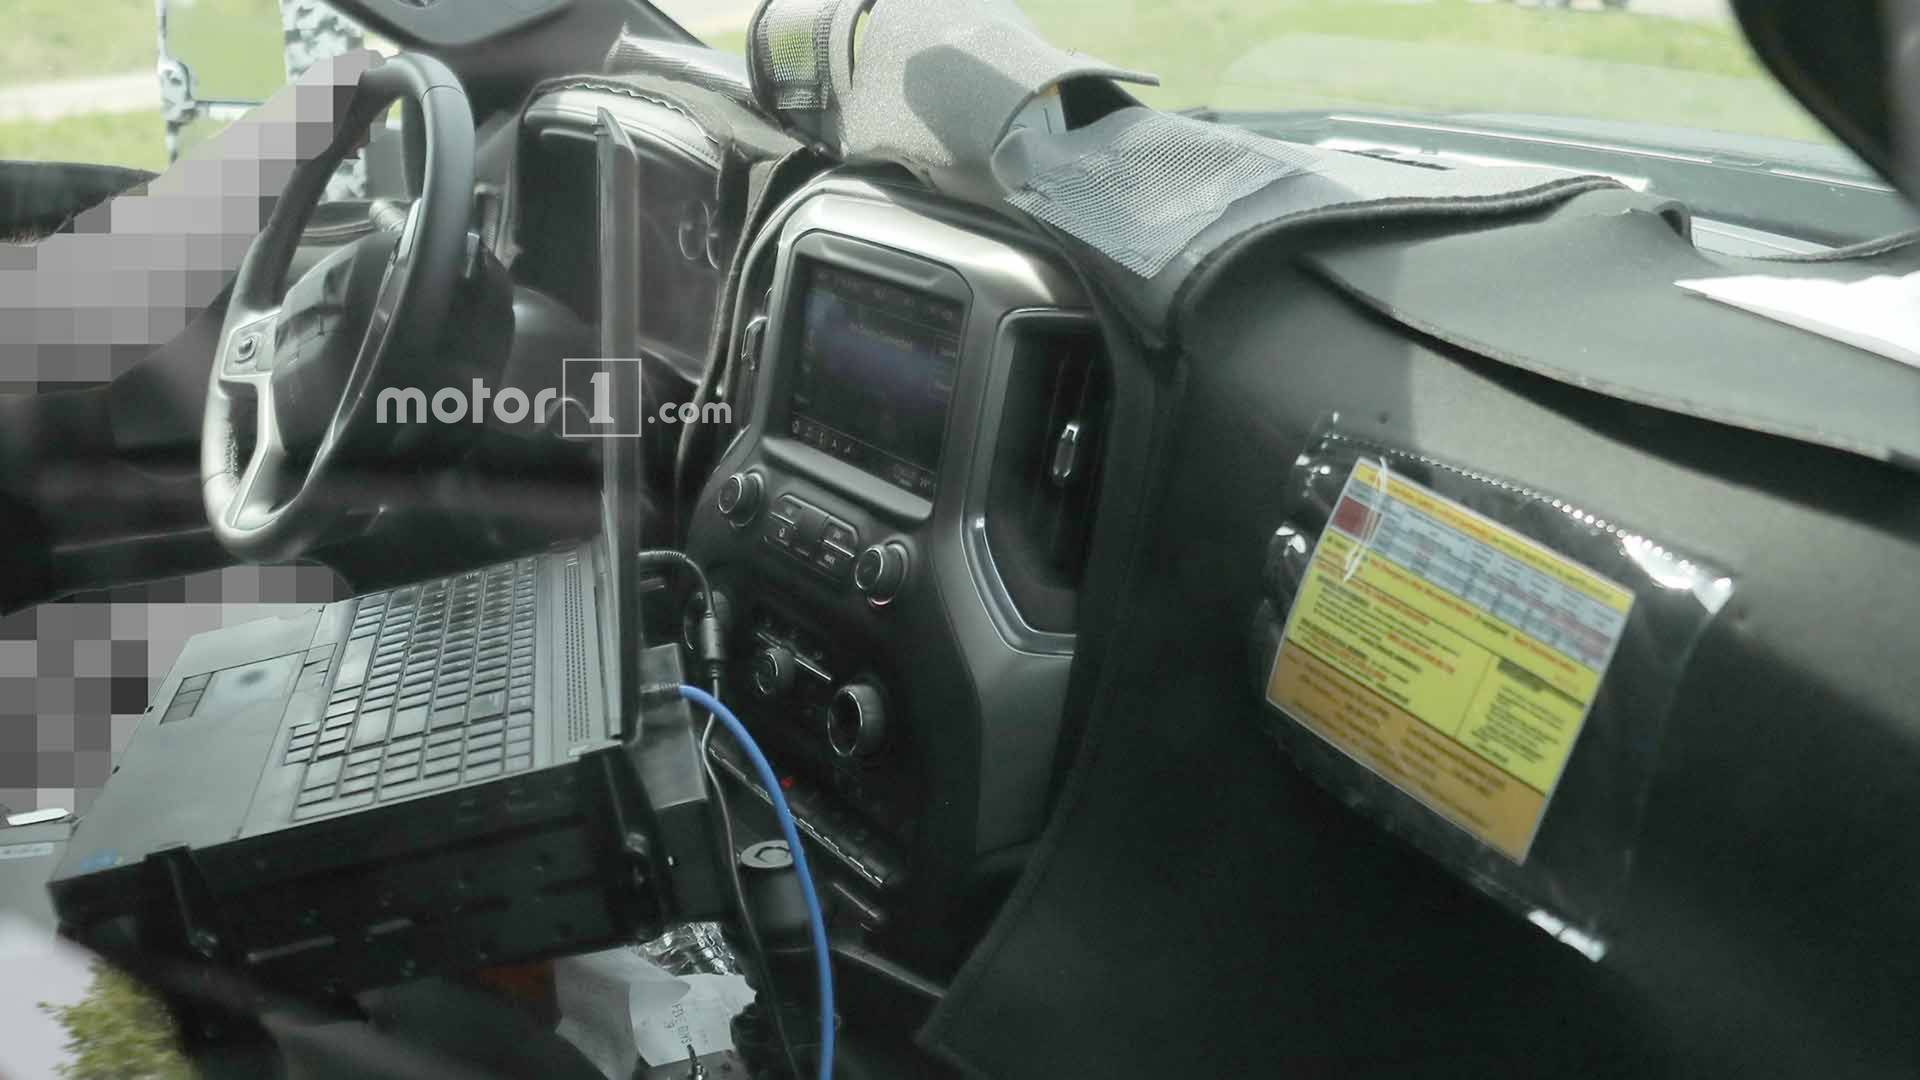 2020 Chevrolet Silverado Hd S Cabin Spied For First Time